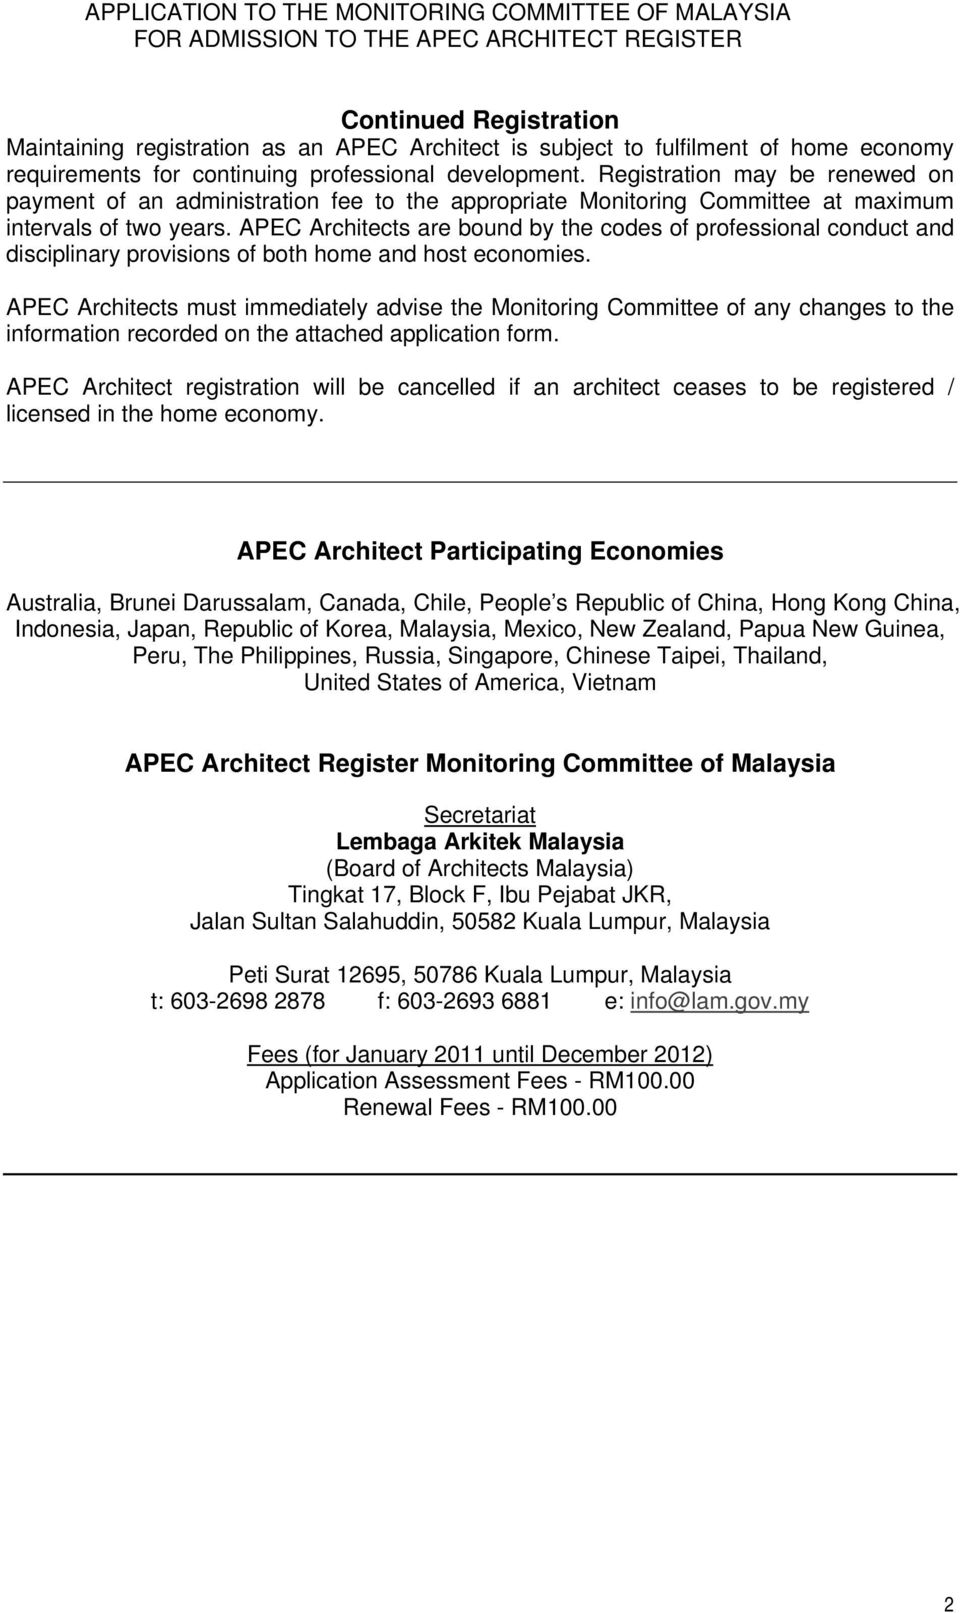 APEC Architects are bound by the codes of professional conduct and disciplinary provisions of both home and host economies.